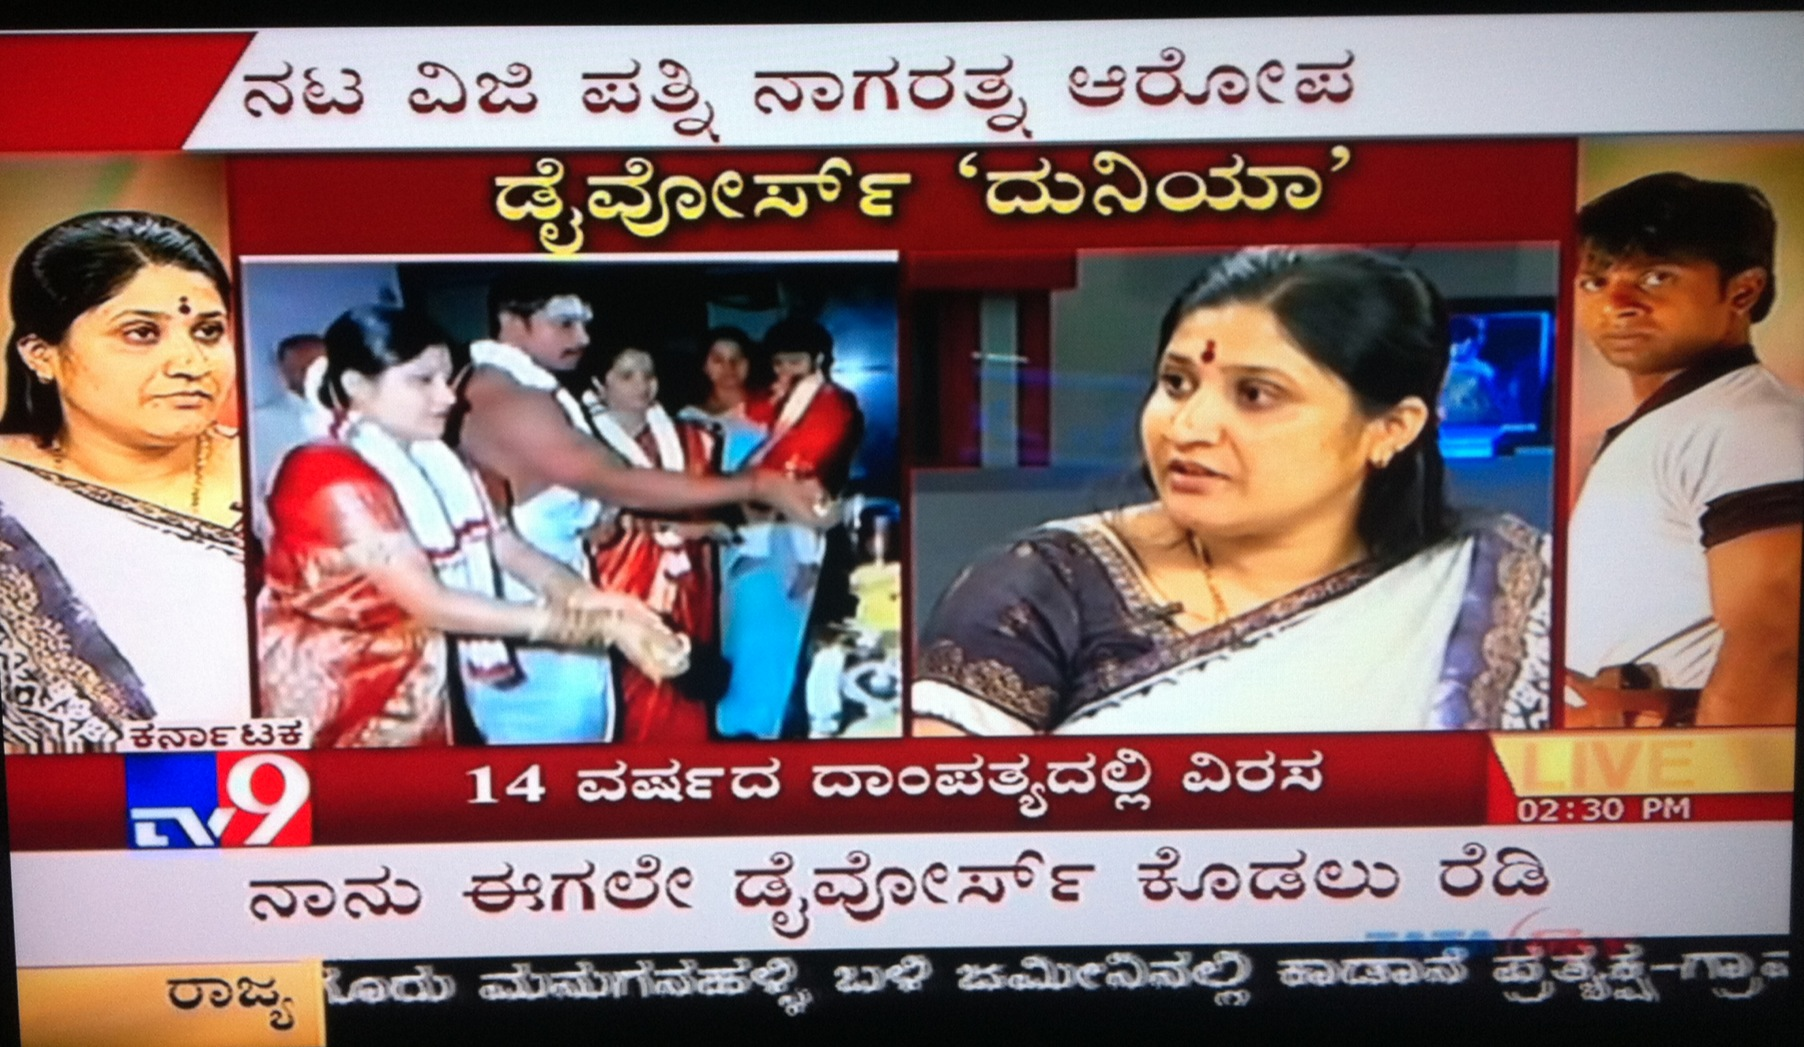 ... dull moment on Kannada news TV channels at the 2.30 pm matinee show